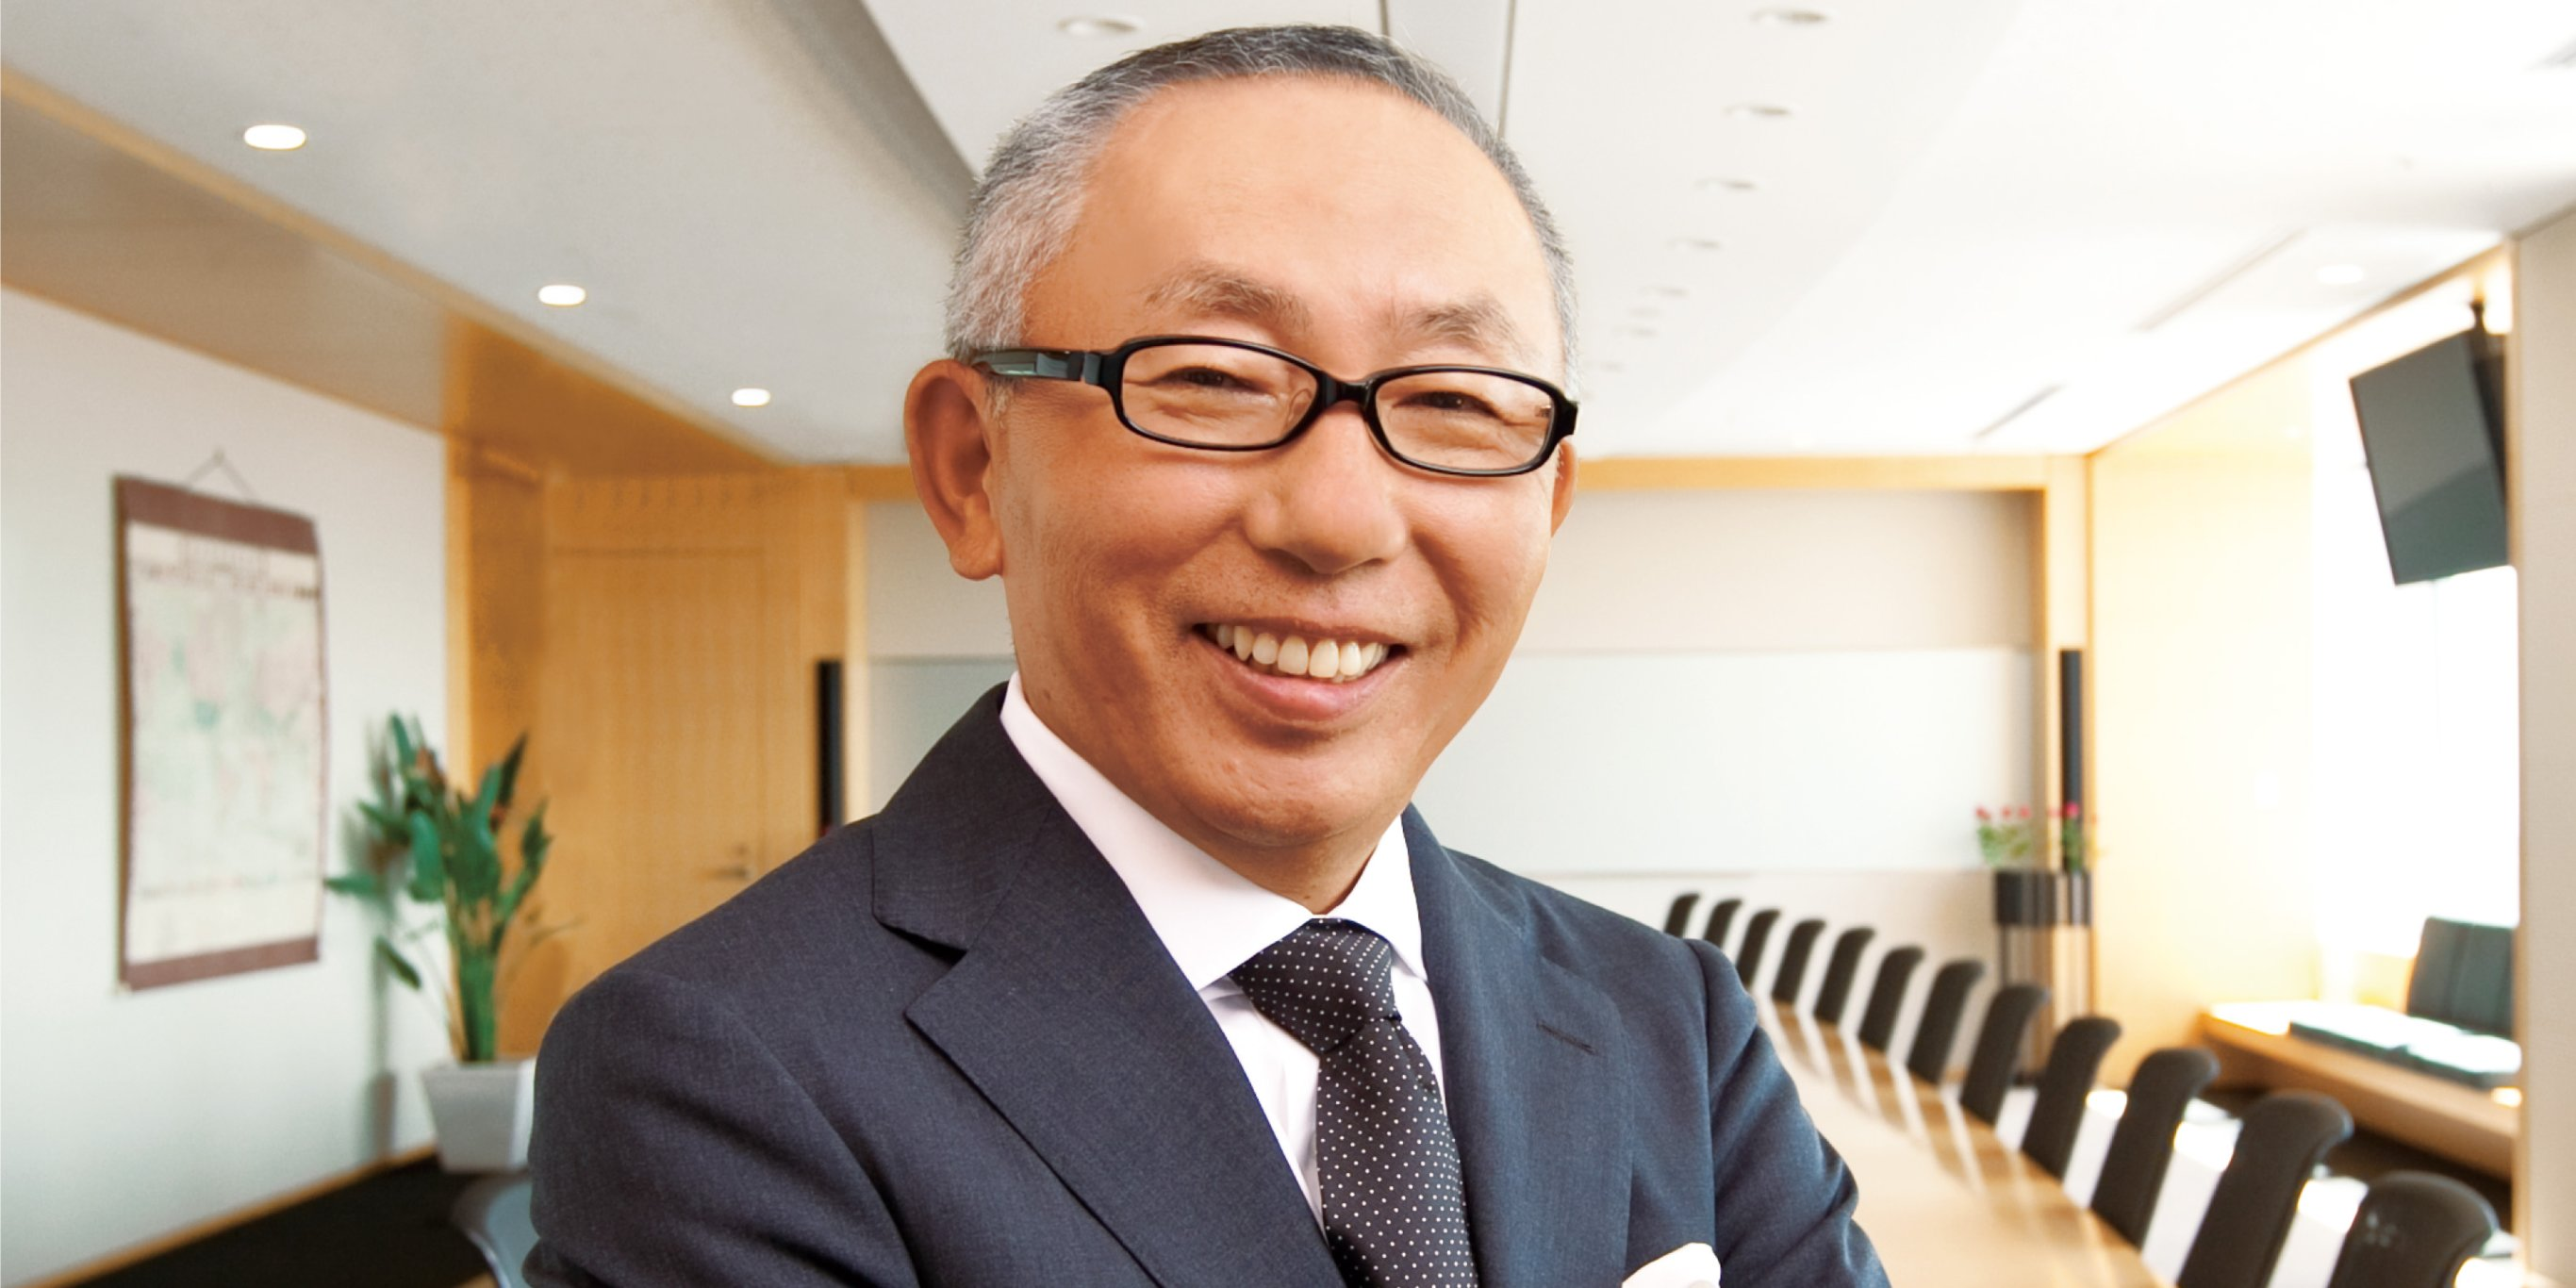 Meet Tadashi Yanai, the richest person in Japan and the founder of Uniqlo,  who's worth nearly $25 billion and owns 2 golf courses in Hawaii